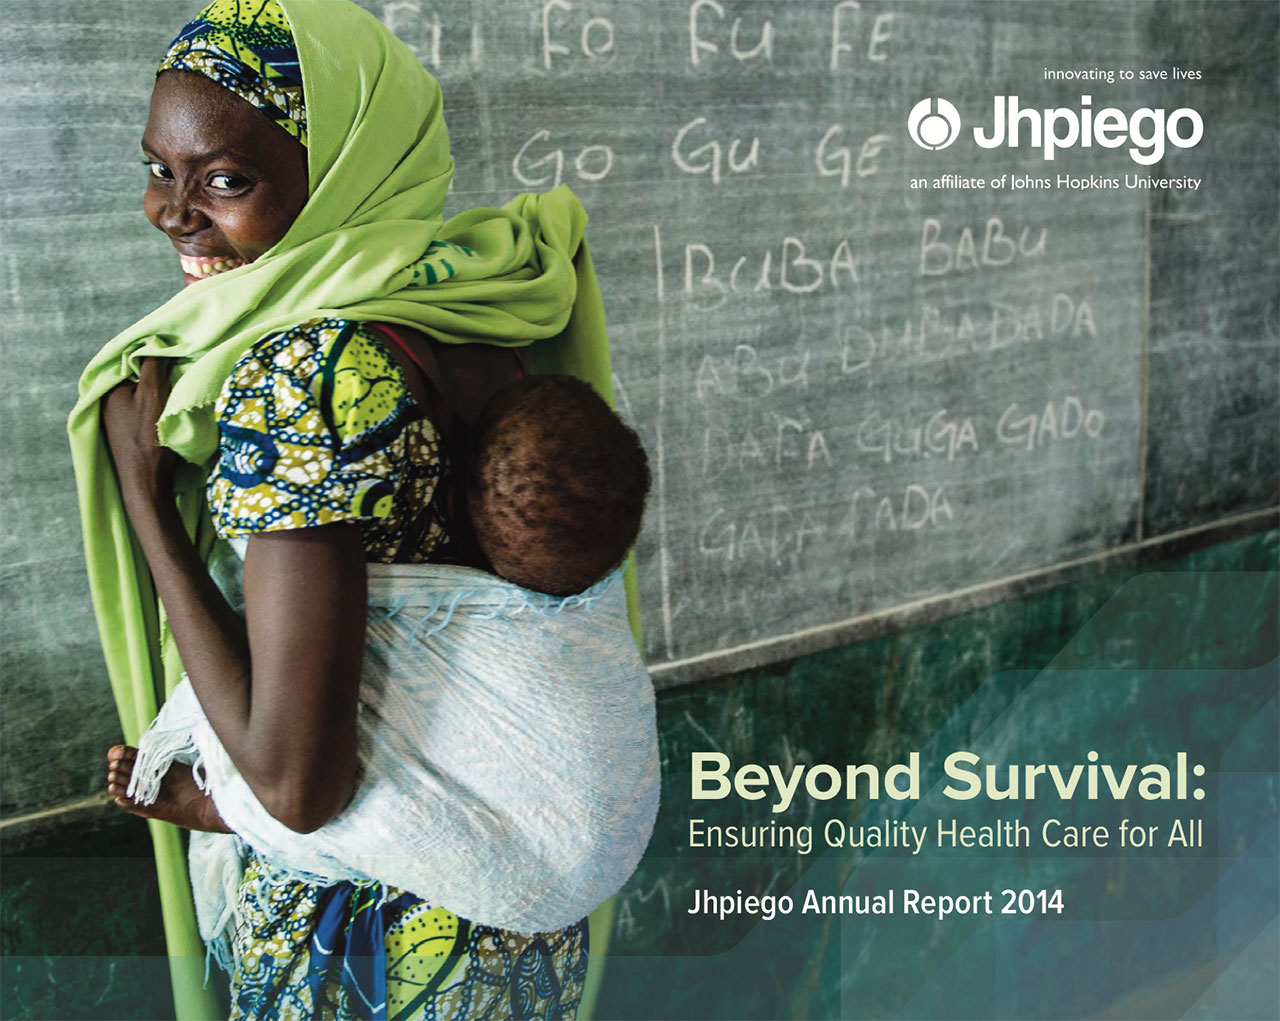 Jhpiego Annual Report 2014